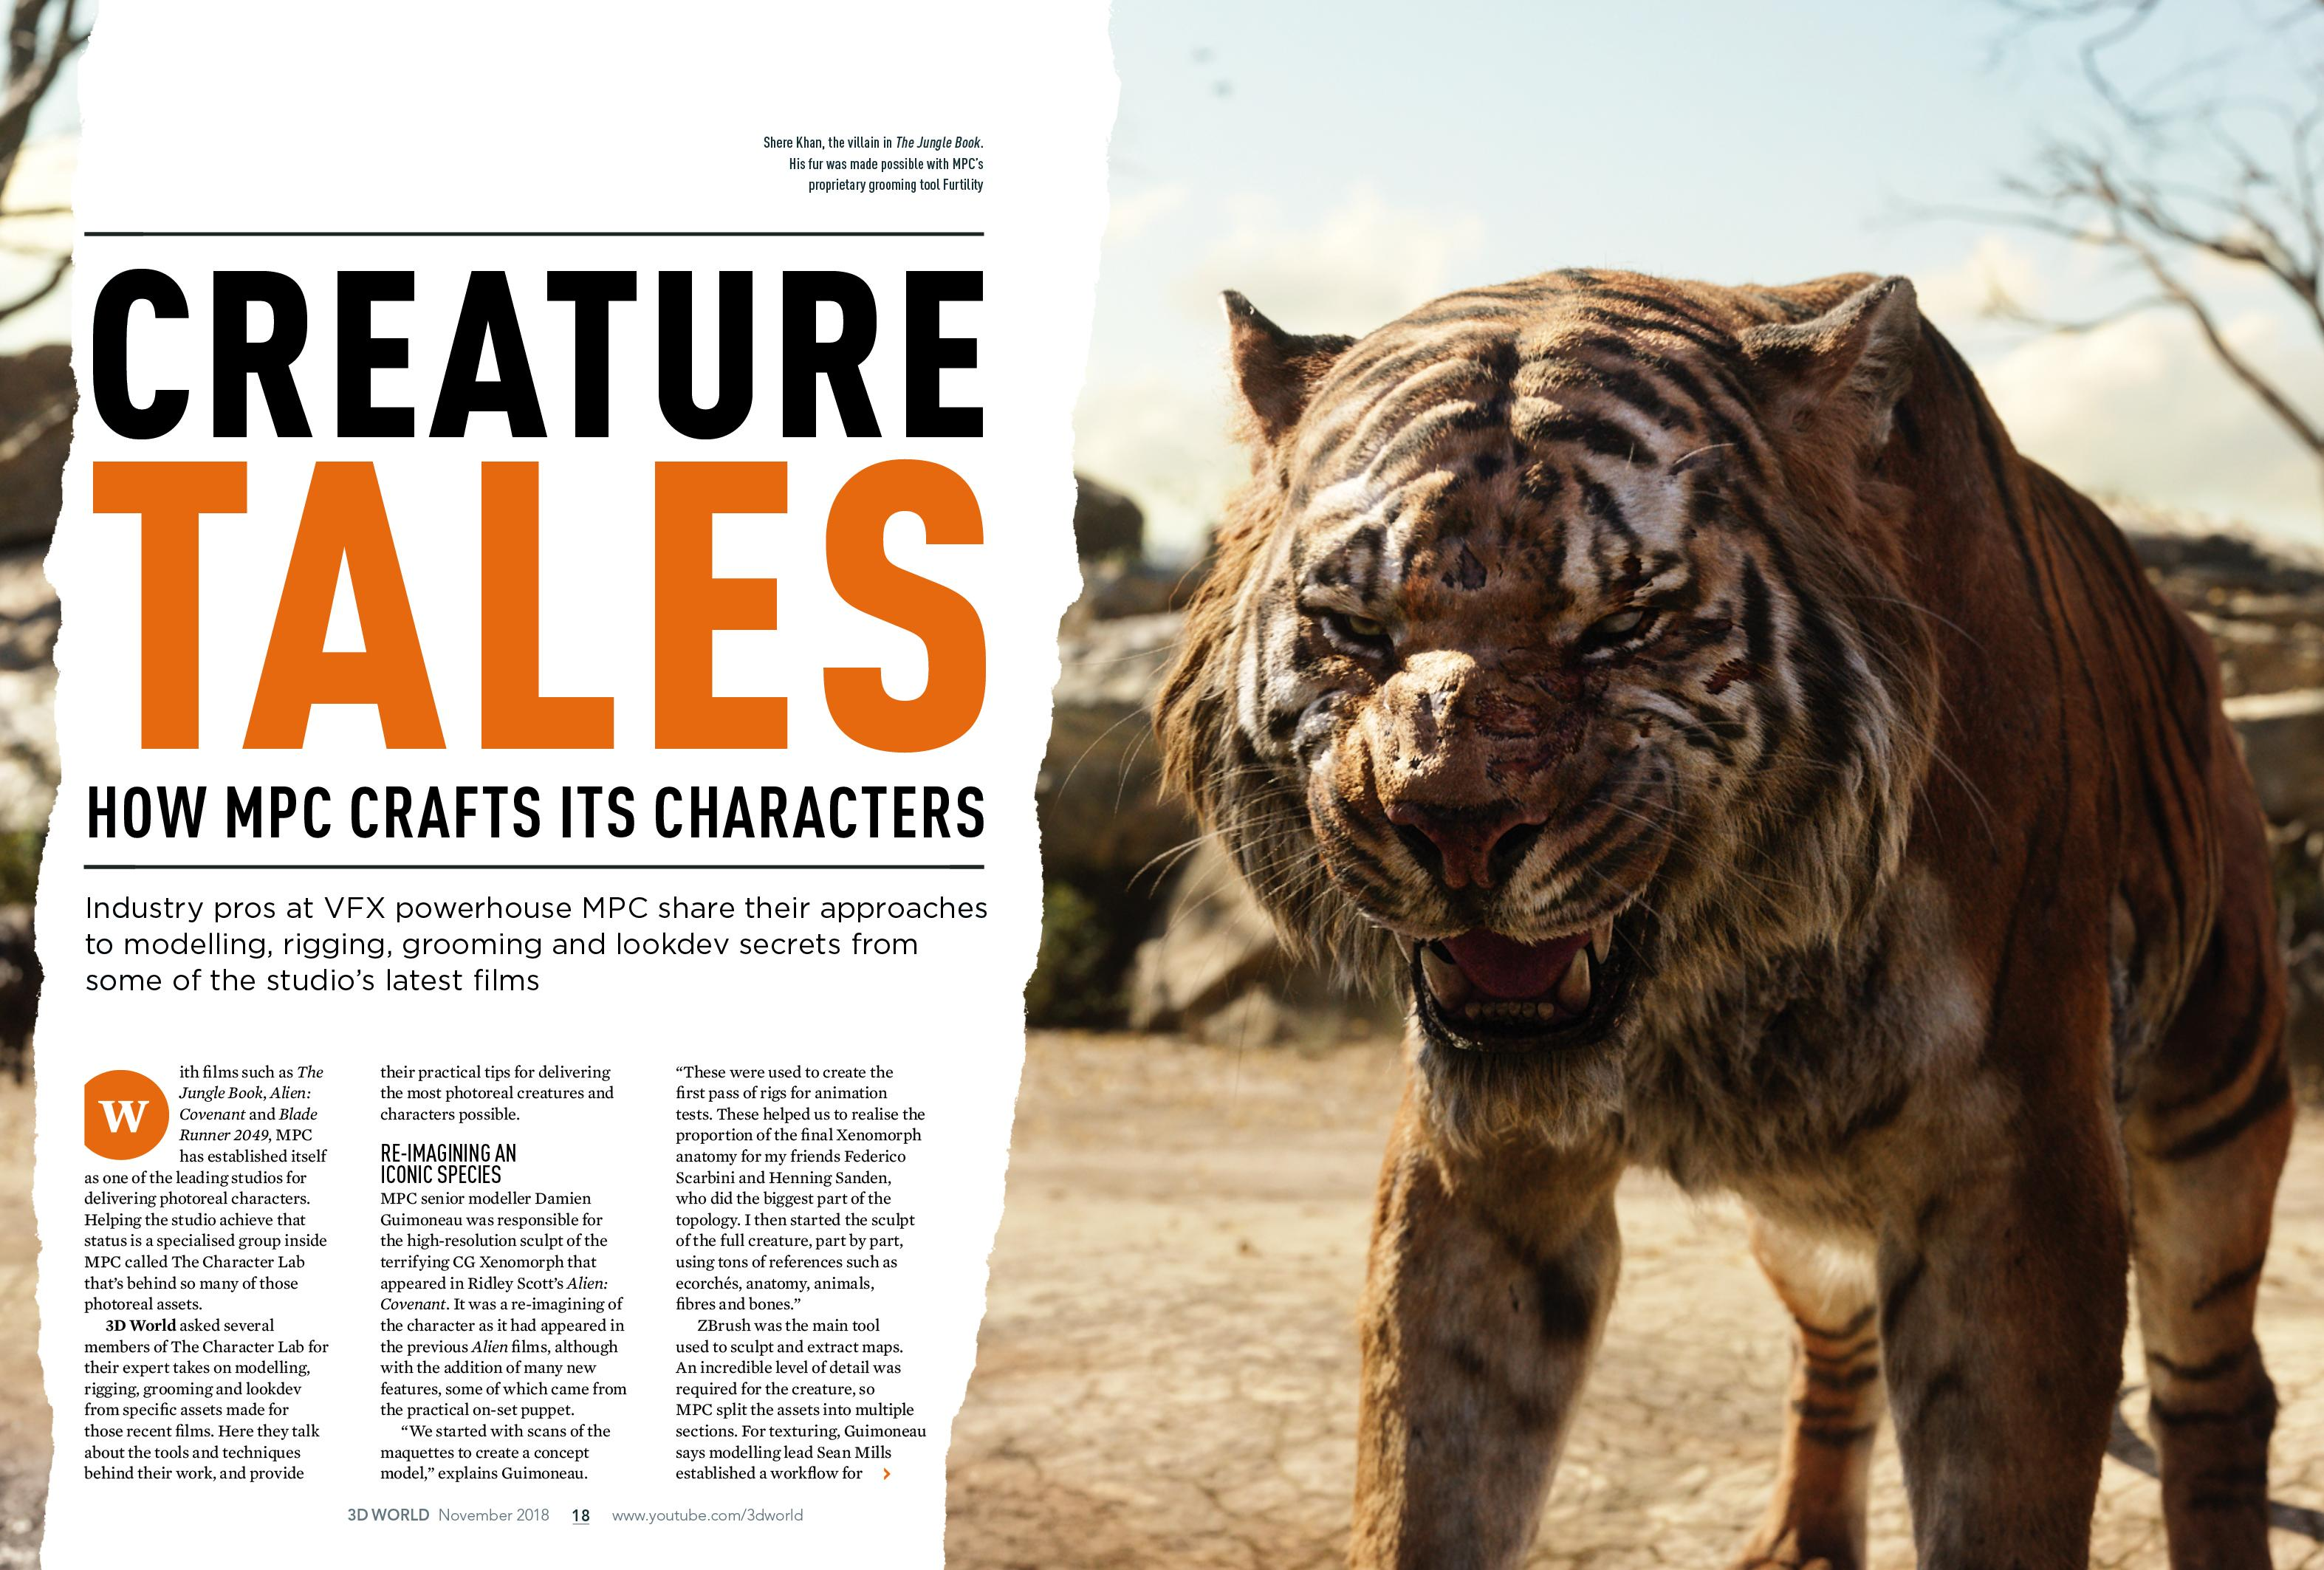 creature tales spread in 3D World